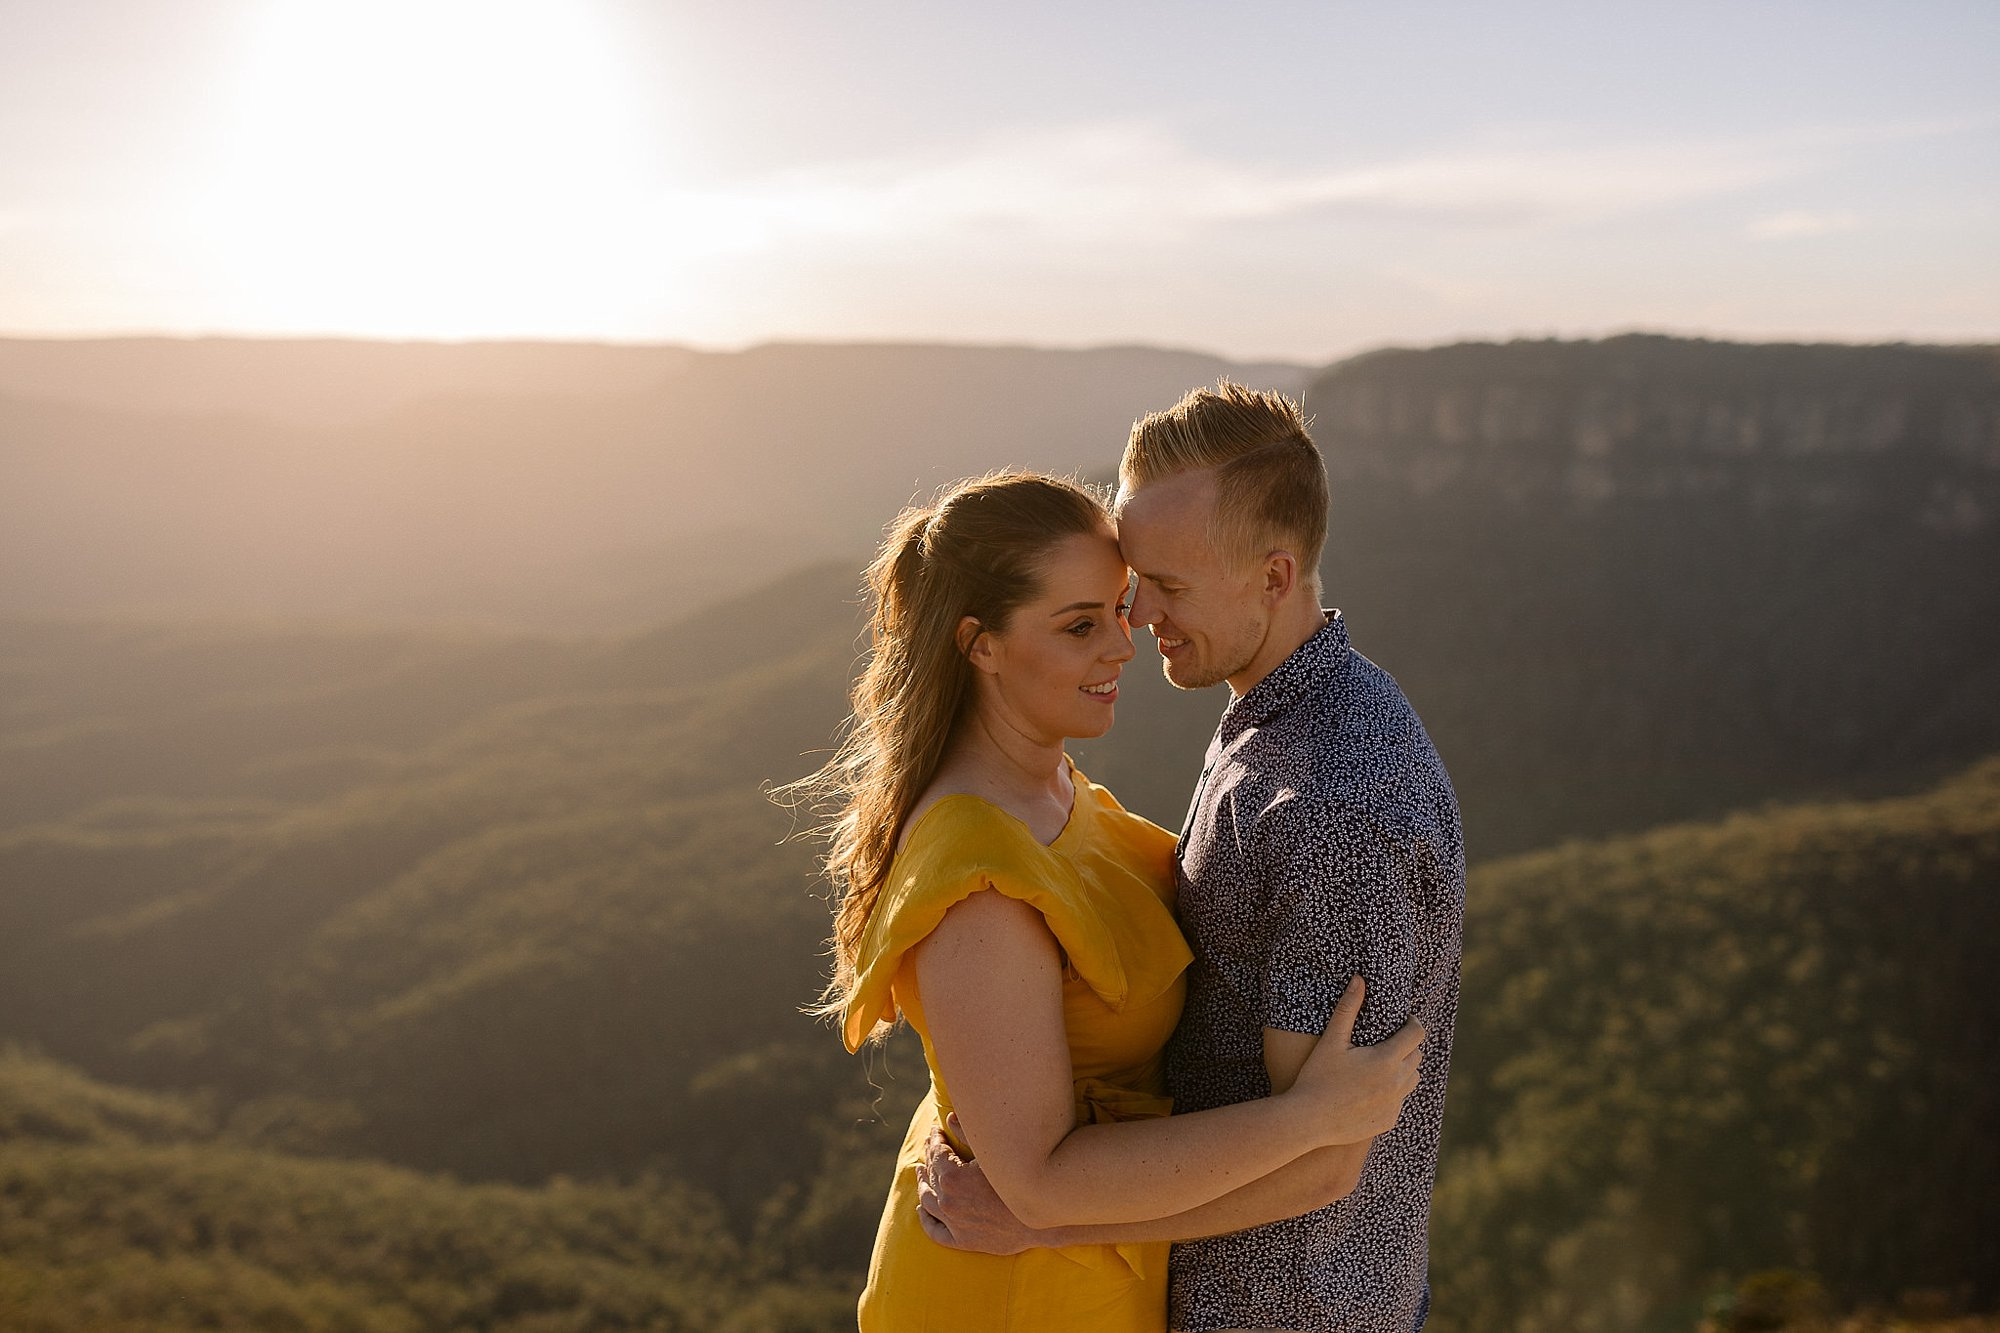 Canberra Portrait Photography,Engagement Photography,Jindabyne wedding photographer,Keepsakephoto by the Keeffes,Snowy Mountains Wedding Photographer,Canberra Wedding Photographer,canberra wedding,ACT wedding photographer,blue Mountains engagement shoot,